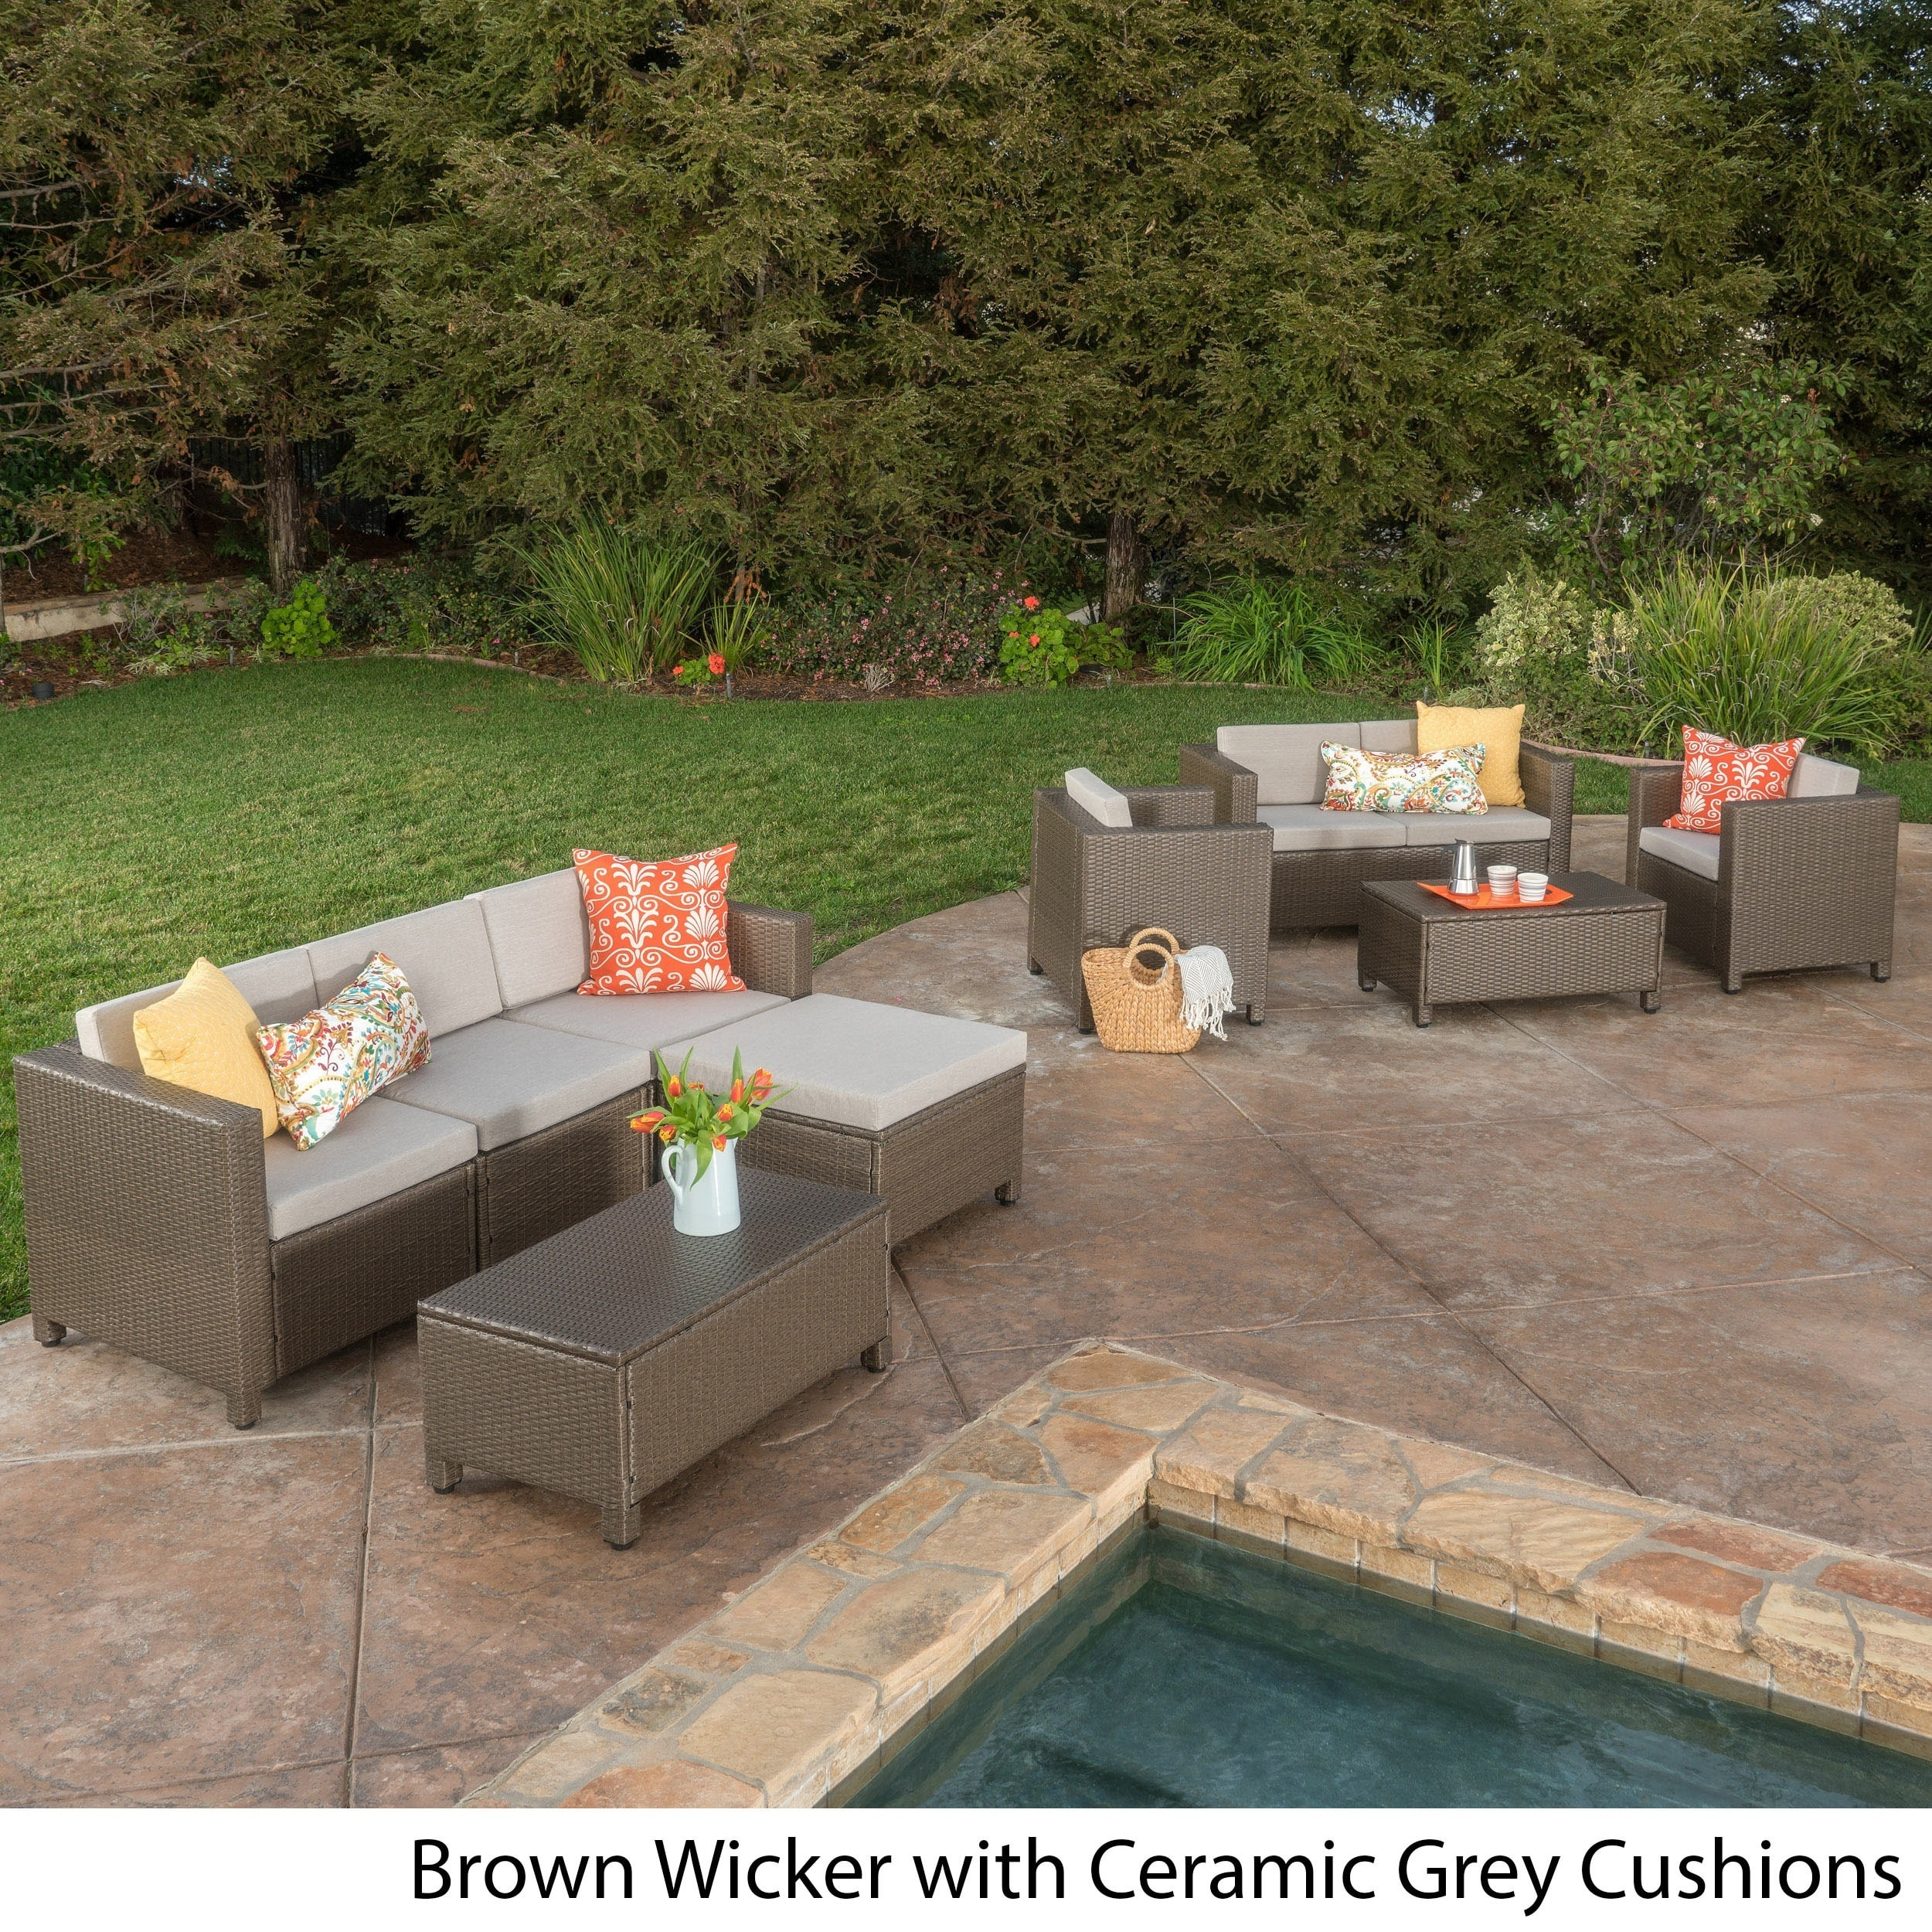 Puerta Outdoor 9 Piece Wicker Sectional Sofa Set With Cushions   Free  Shipping Today   Overstock.com   18654020